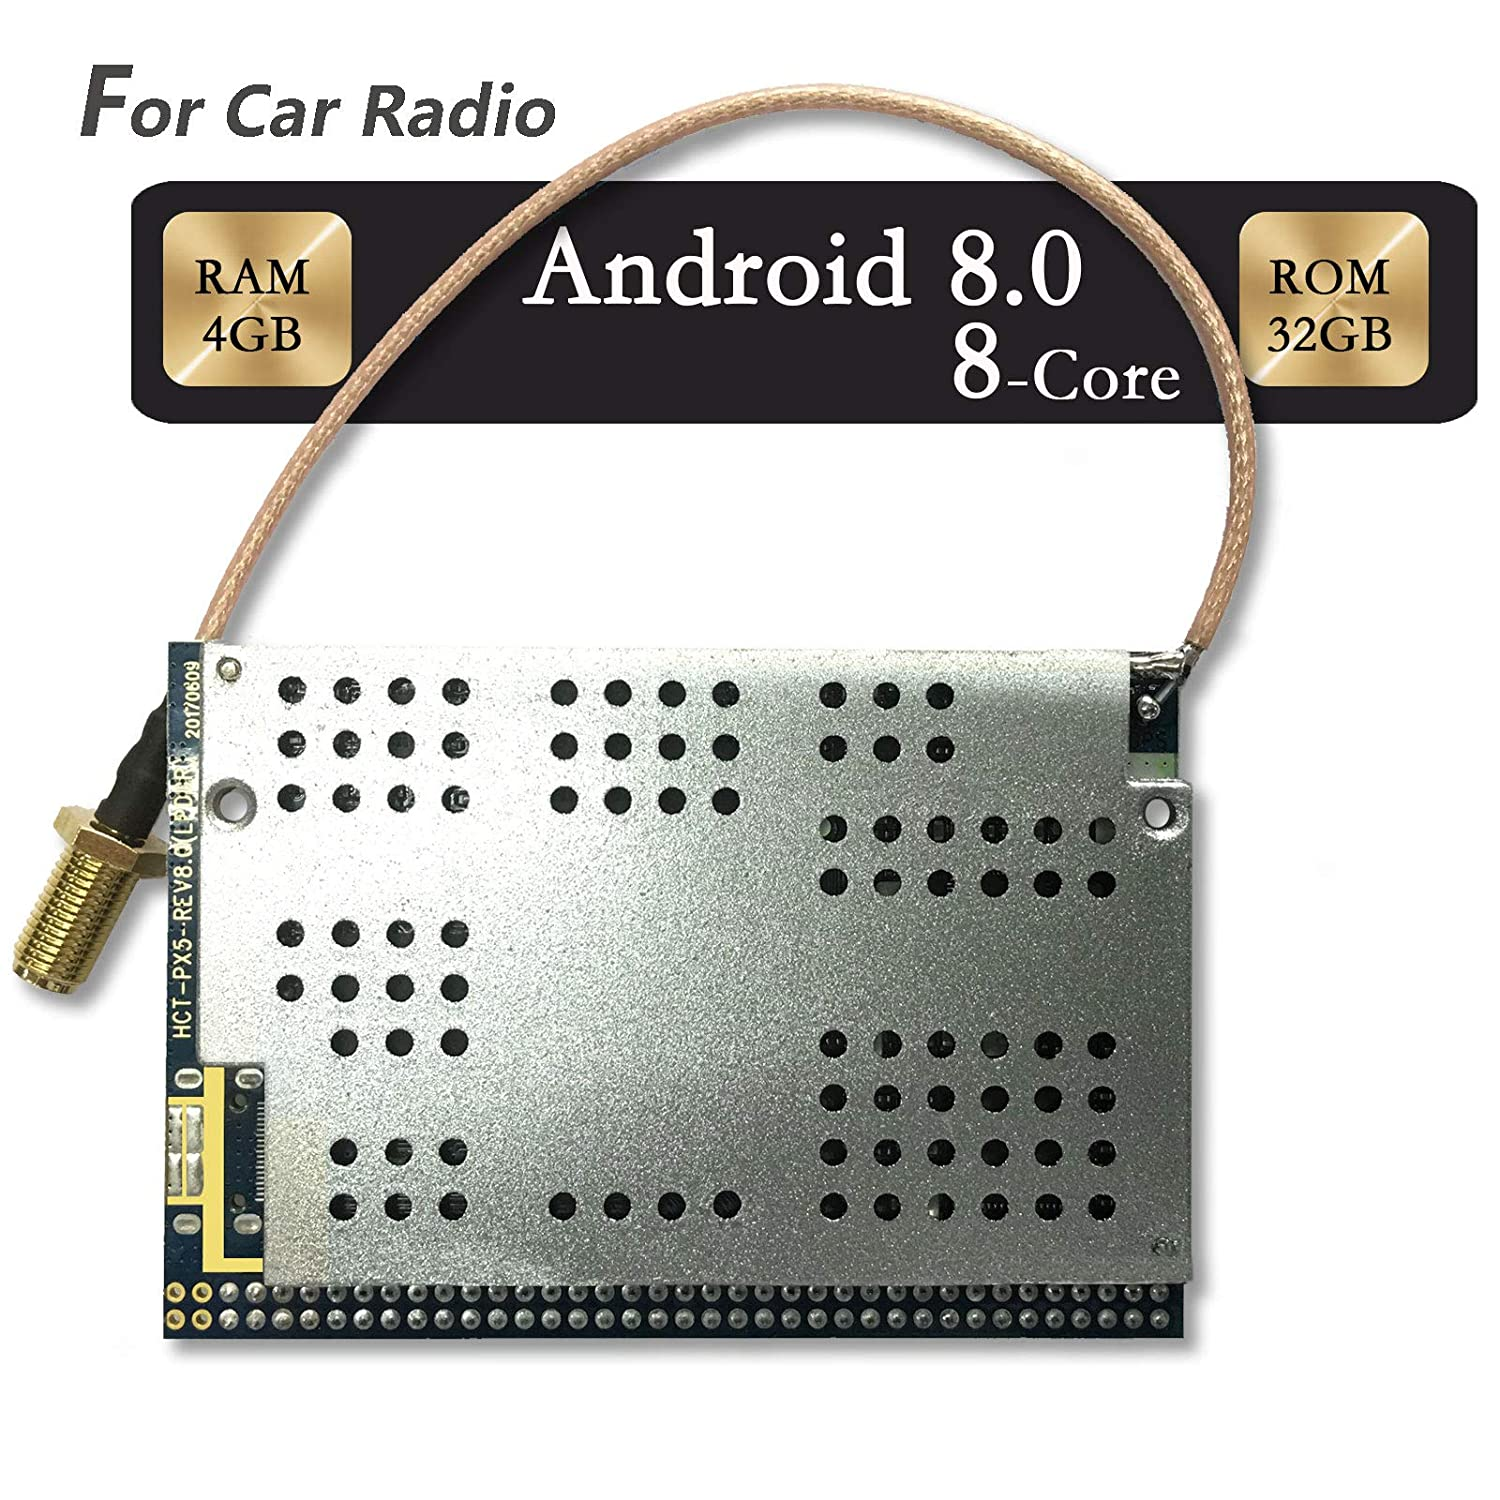 T One Px5 Car Radio Cpu Boardandroid 80octa Core4gb Hot Sale Fm Sd Card Circuit Board Pcba View Ram32gb Rom Gps Navigation Core Boardfit For Px3 Aftermarket Upgradebiggest